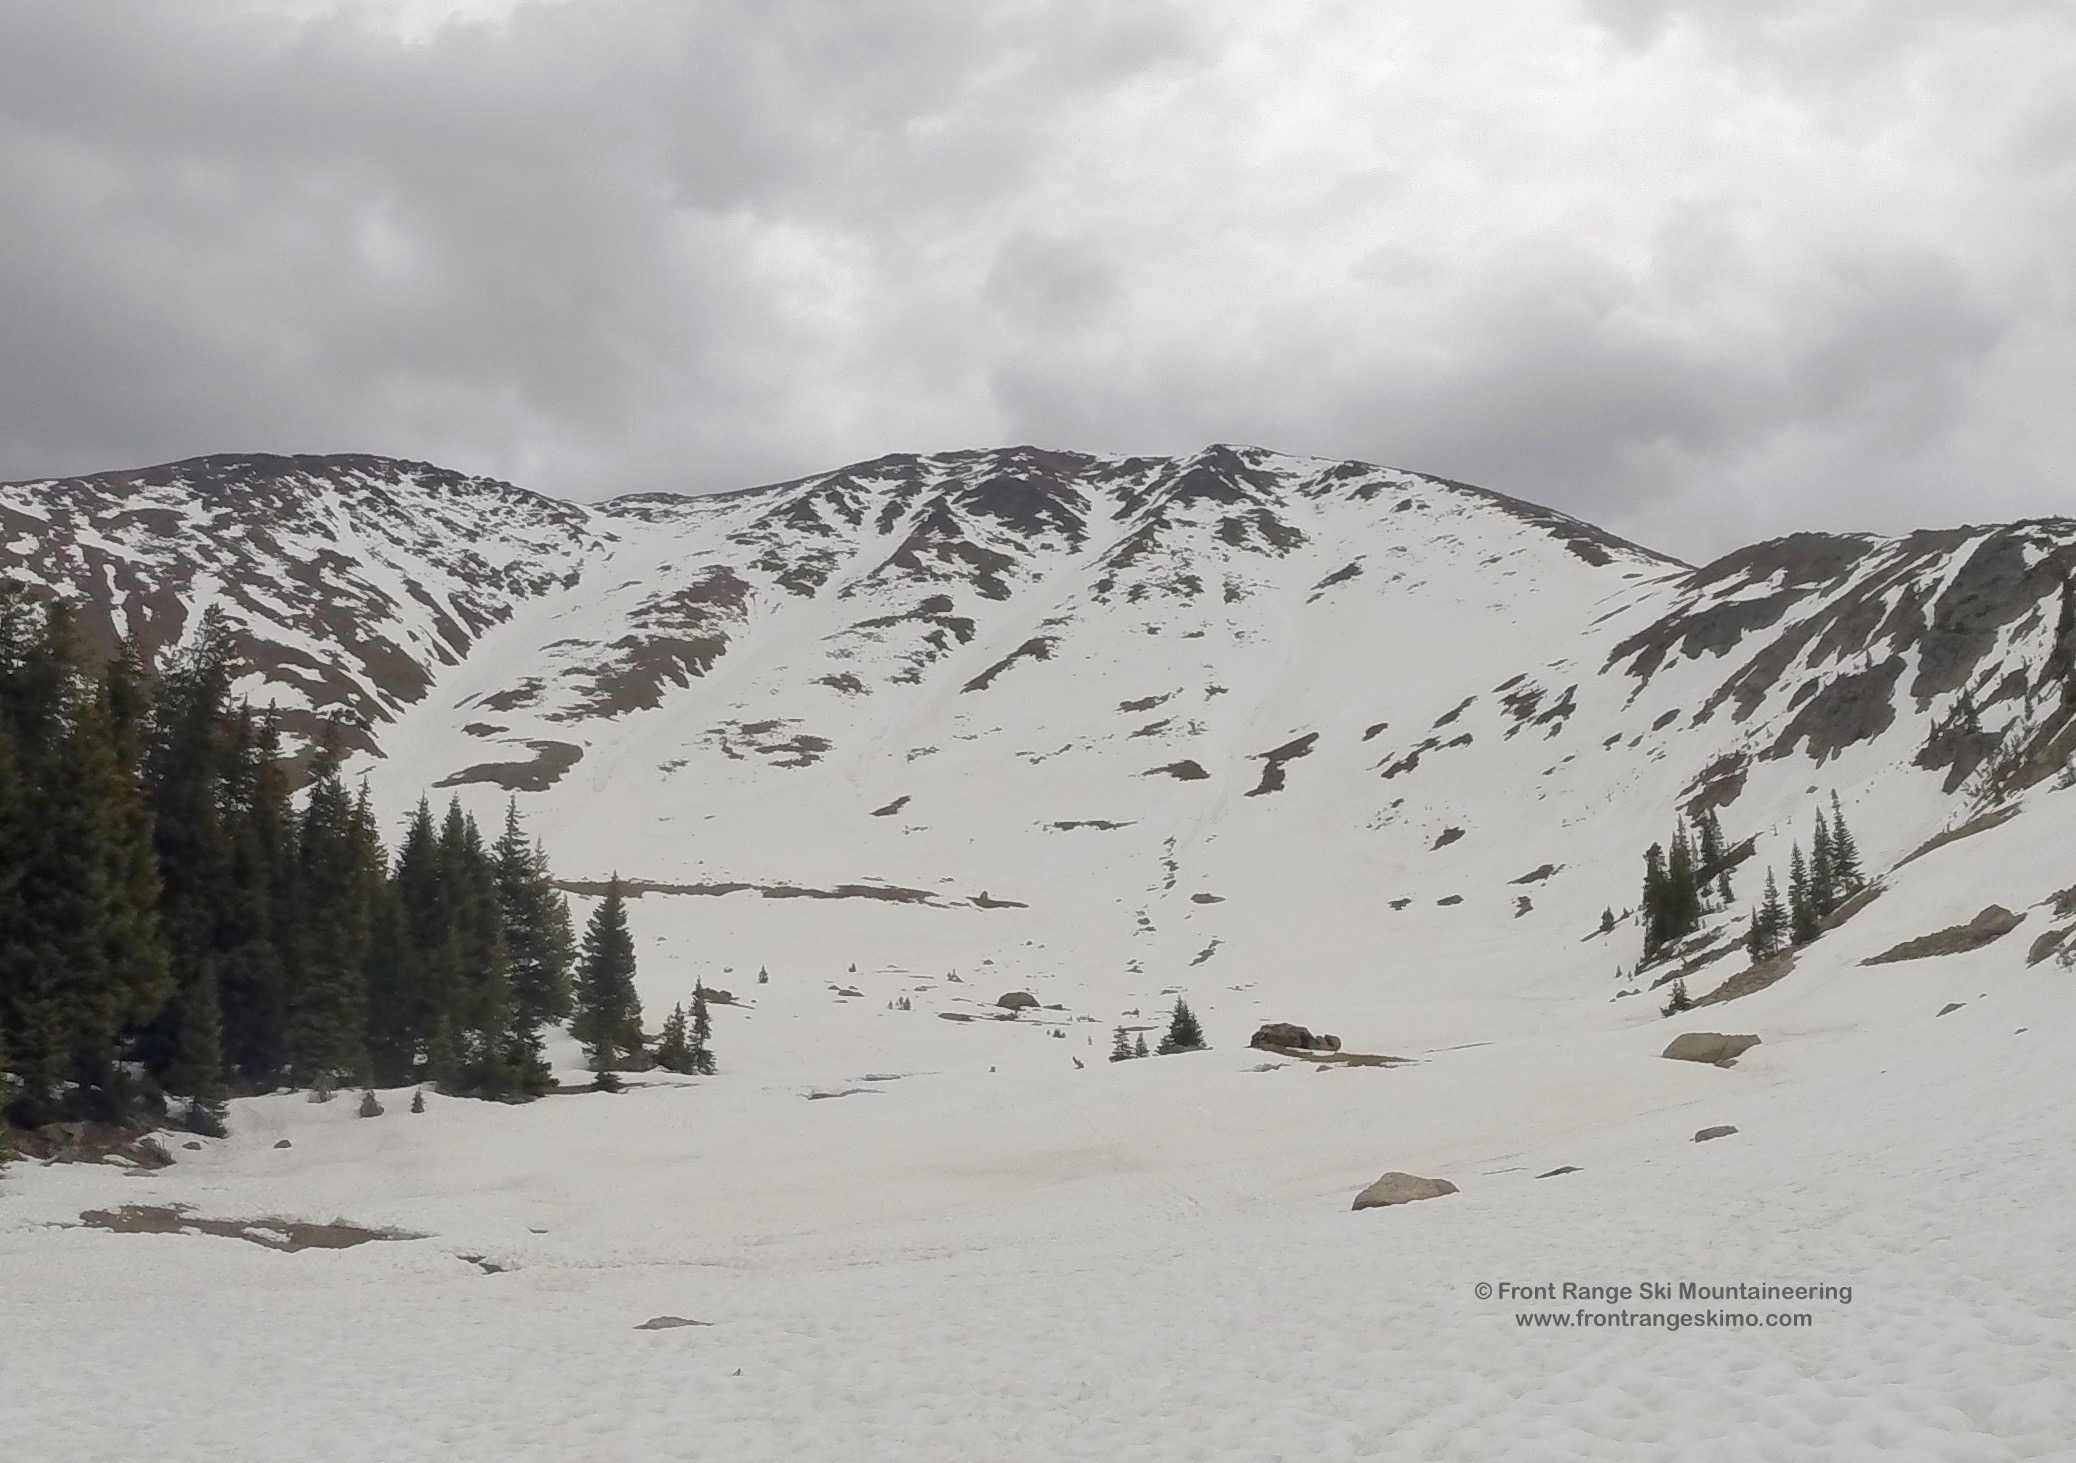 Parry Peak's Bear Claw from the Northwest.